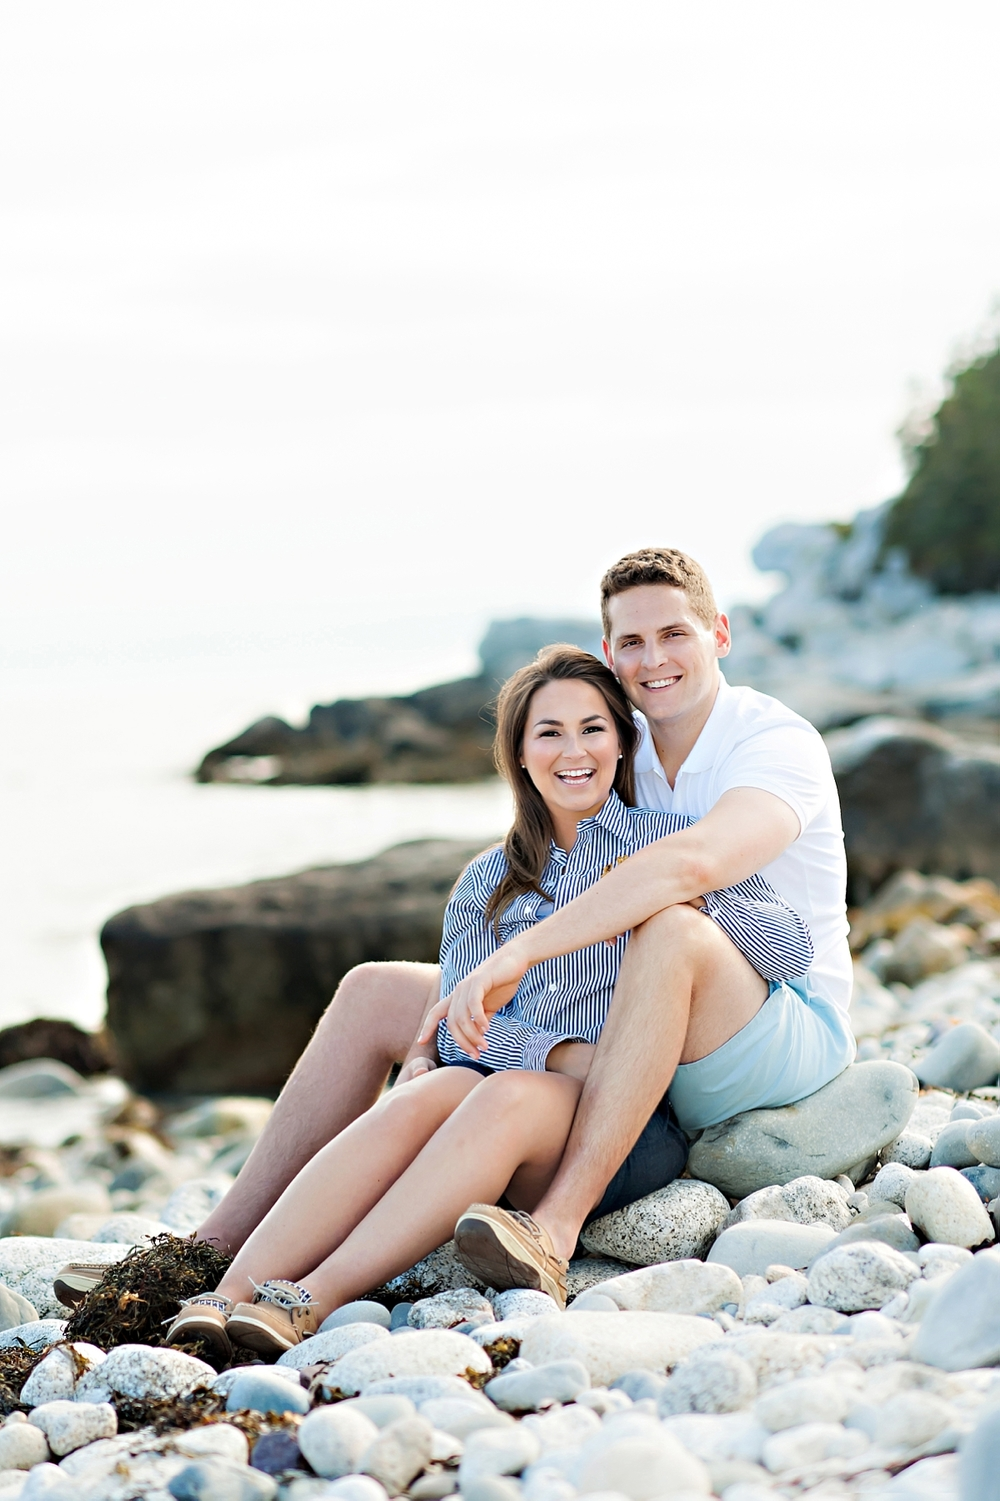 Nova-Scotia-Coastal-Class-Engagement-Shoot-Candace-Berry-Photography17.jpg